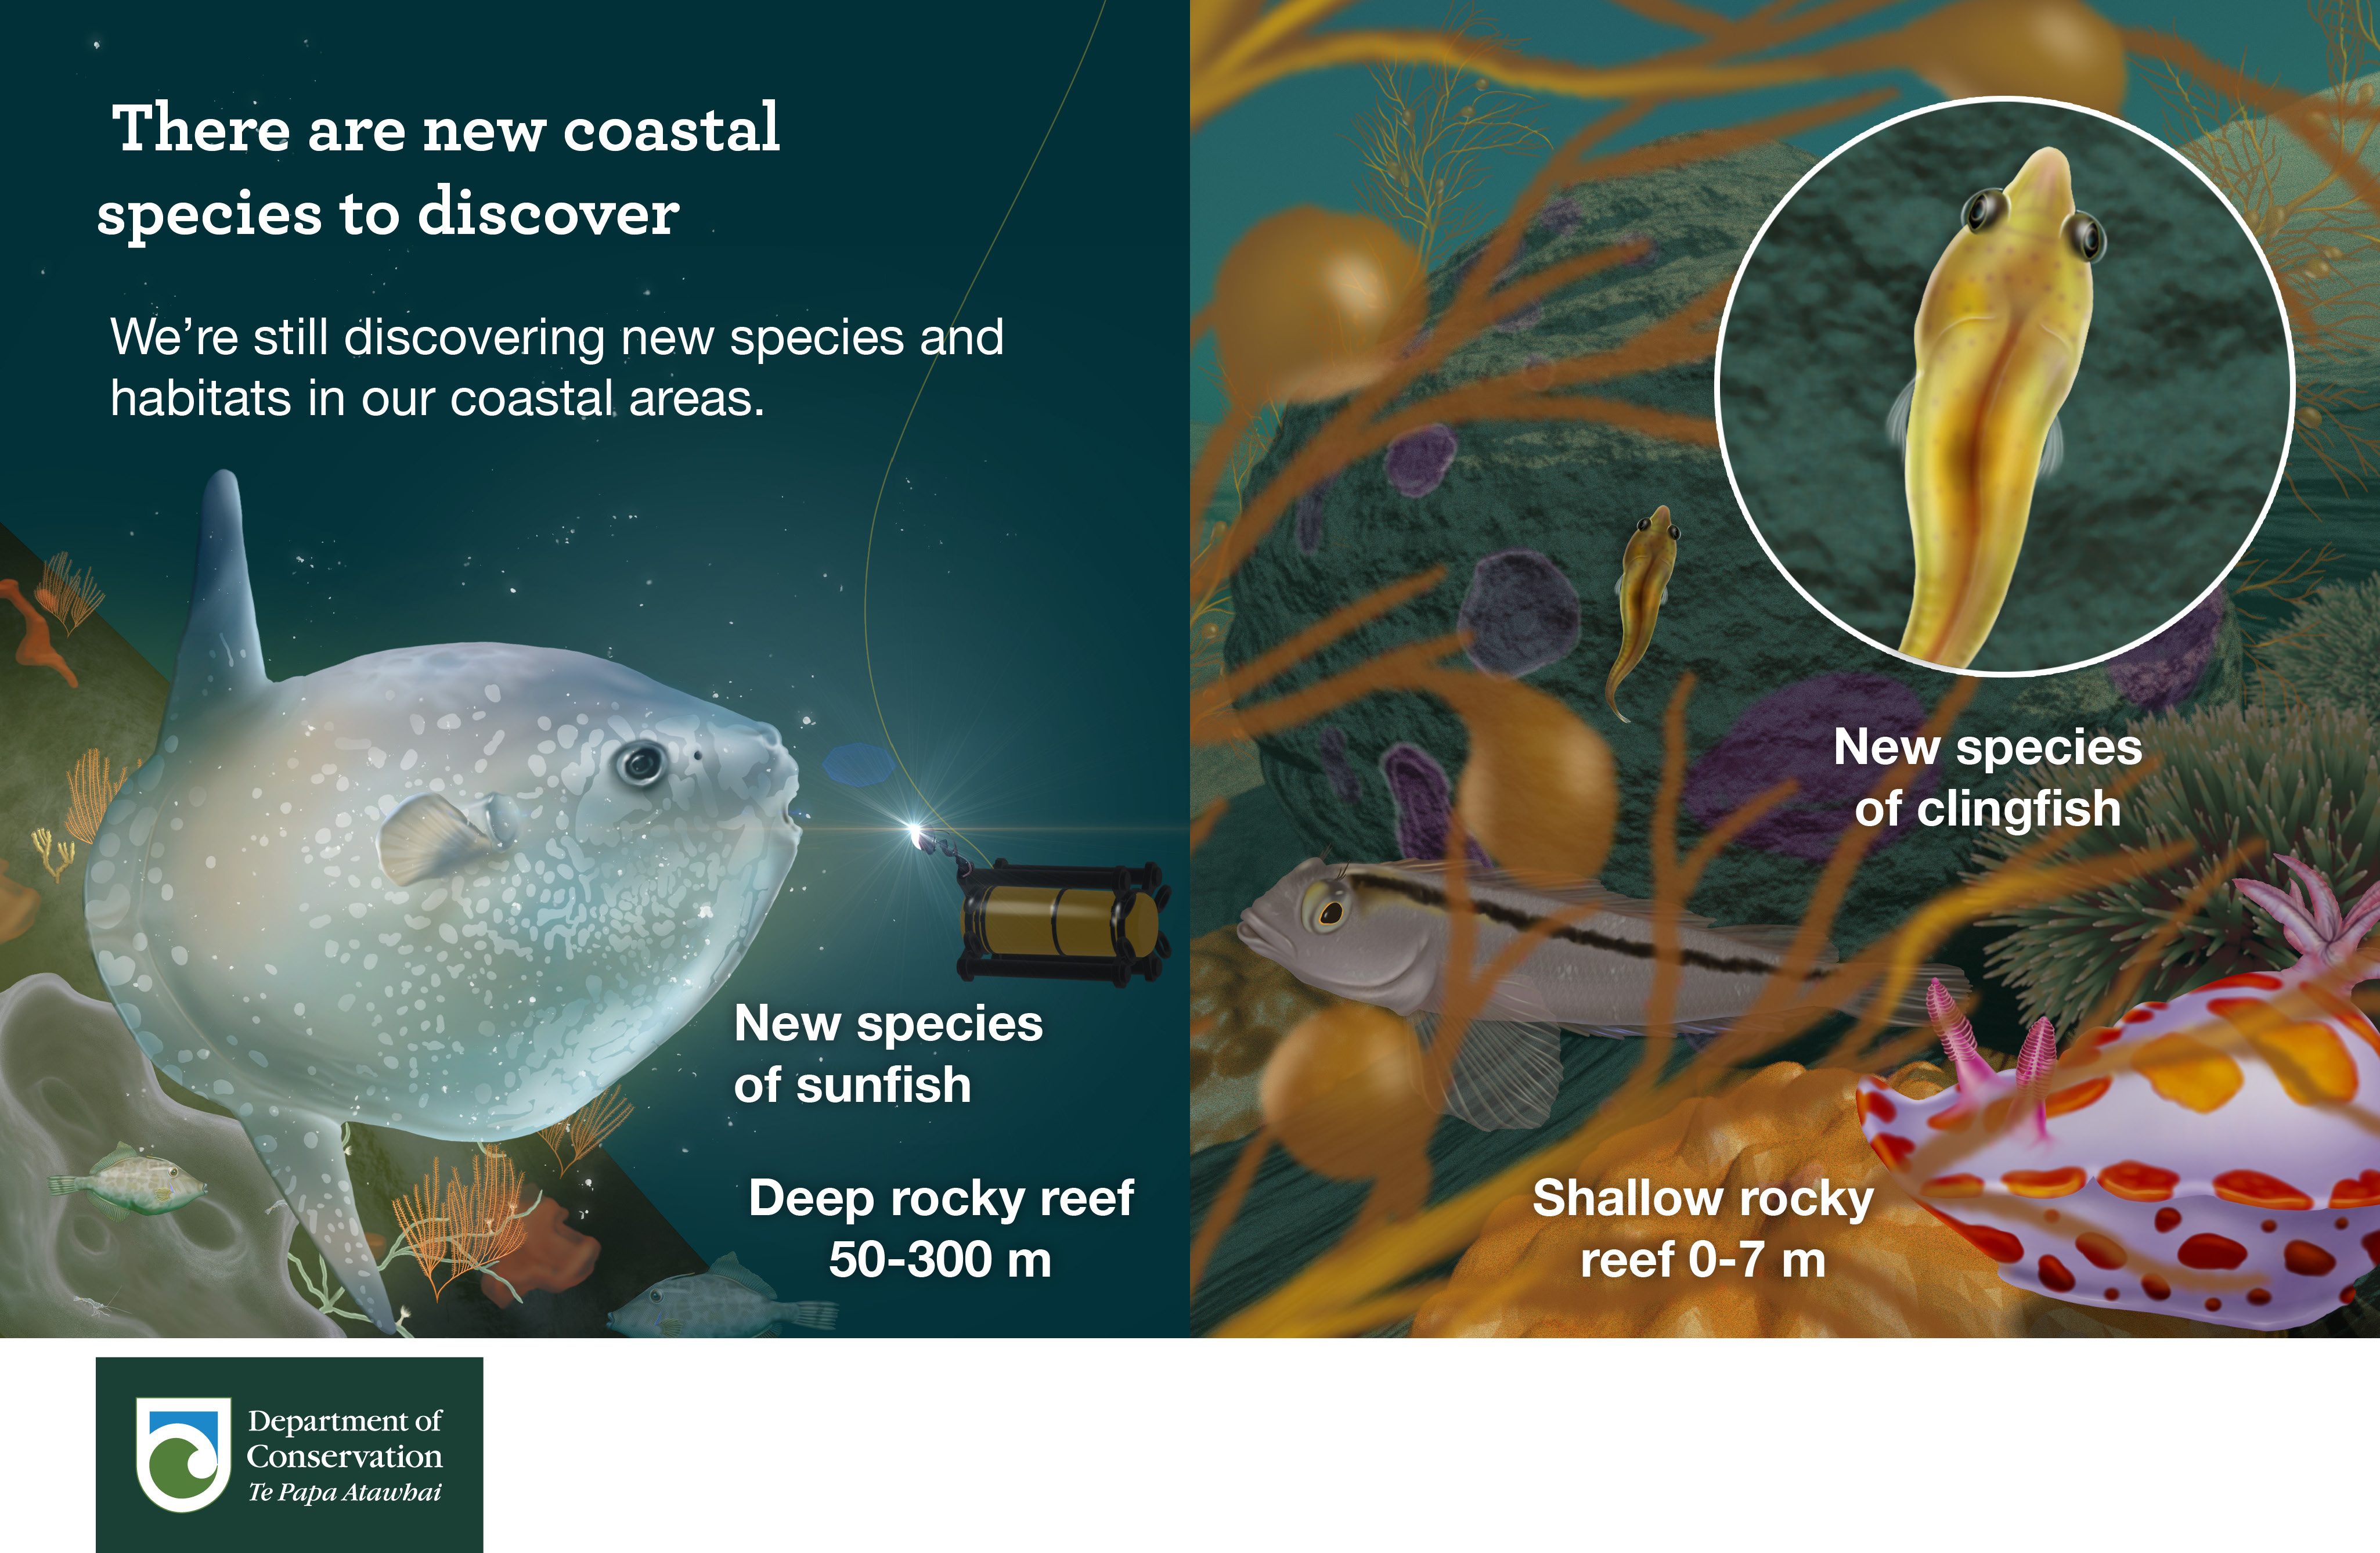 There are new coastal species to discover